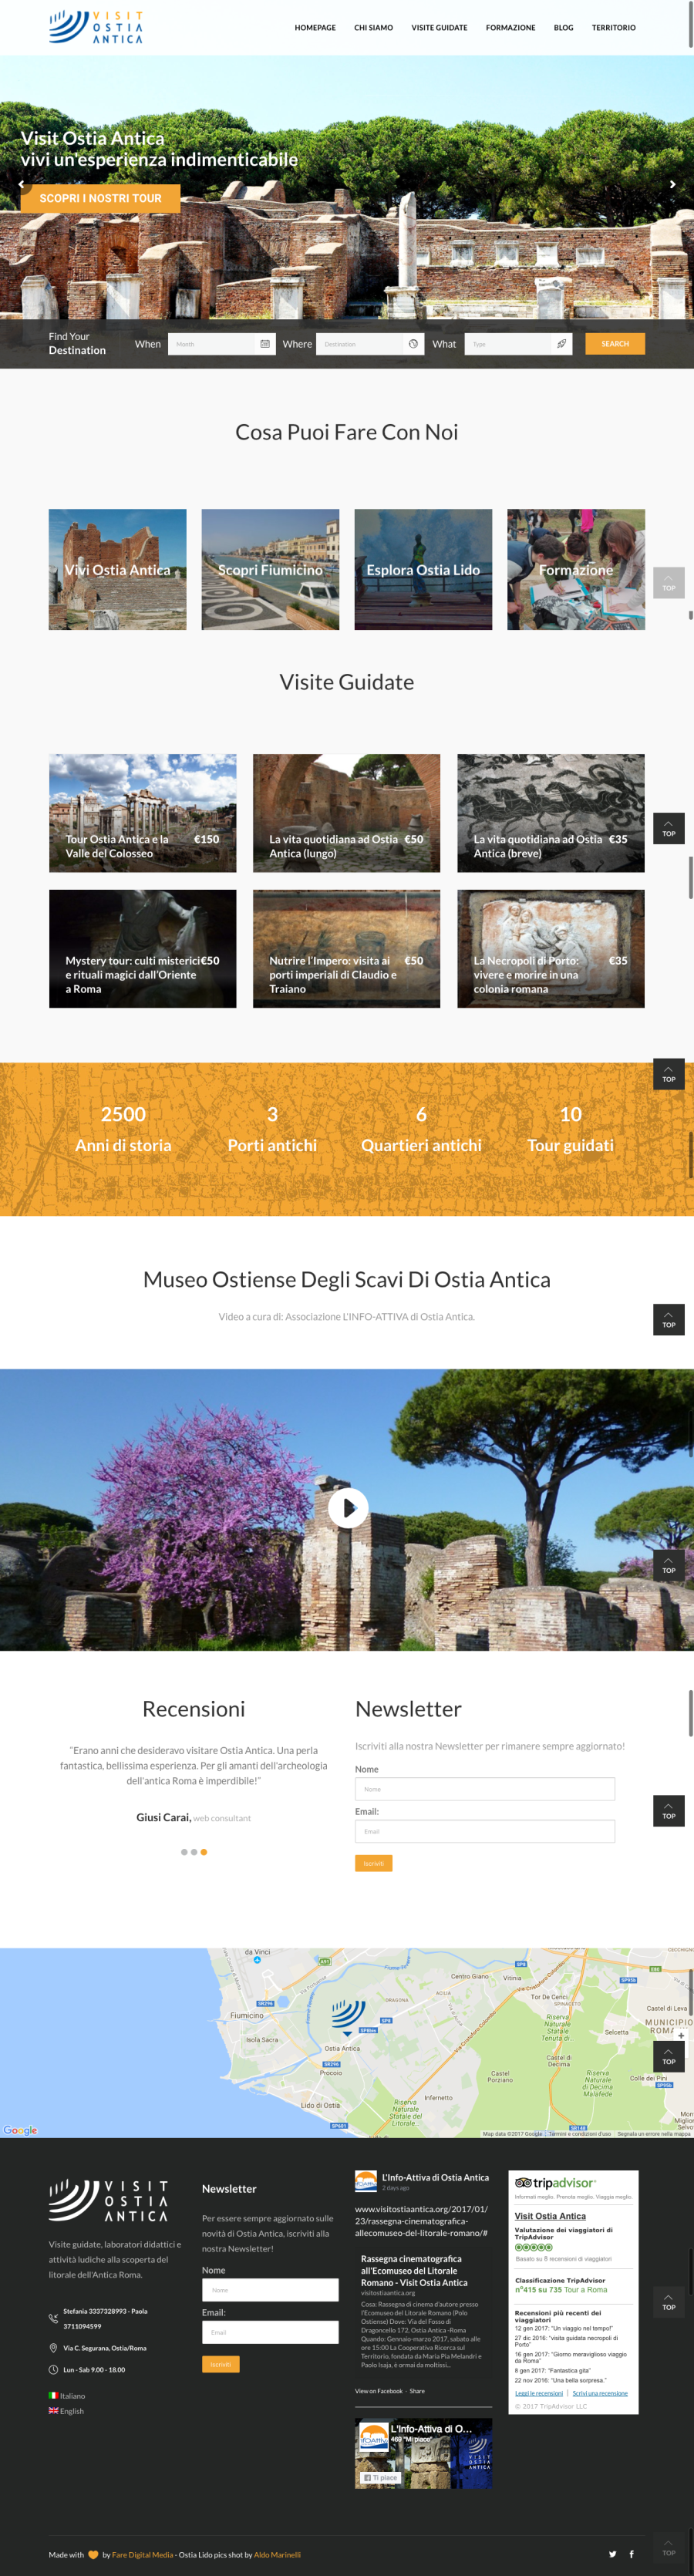 screeshot visit ostia antica web marketing